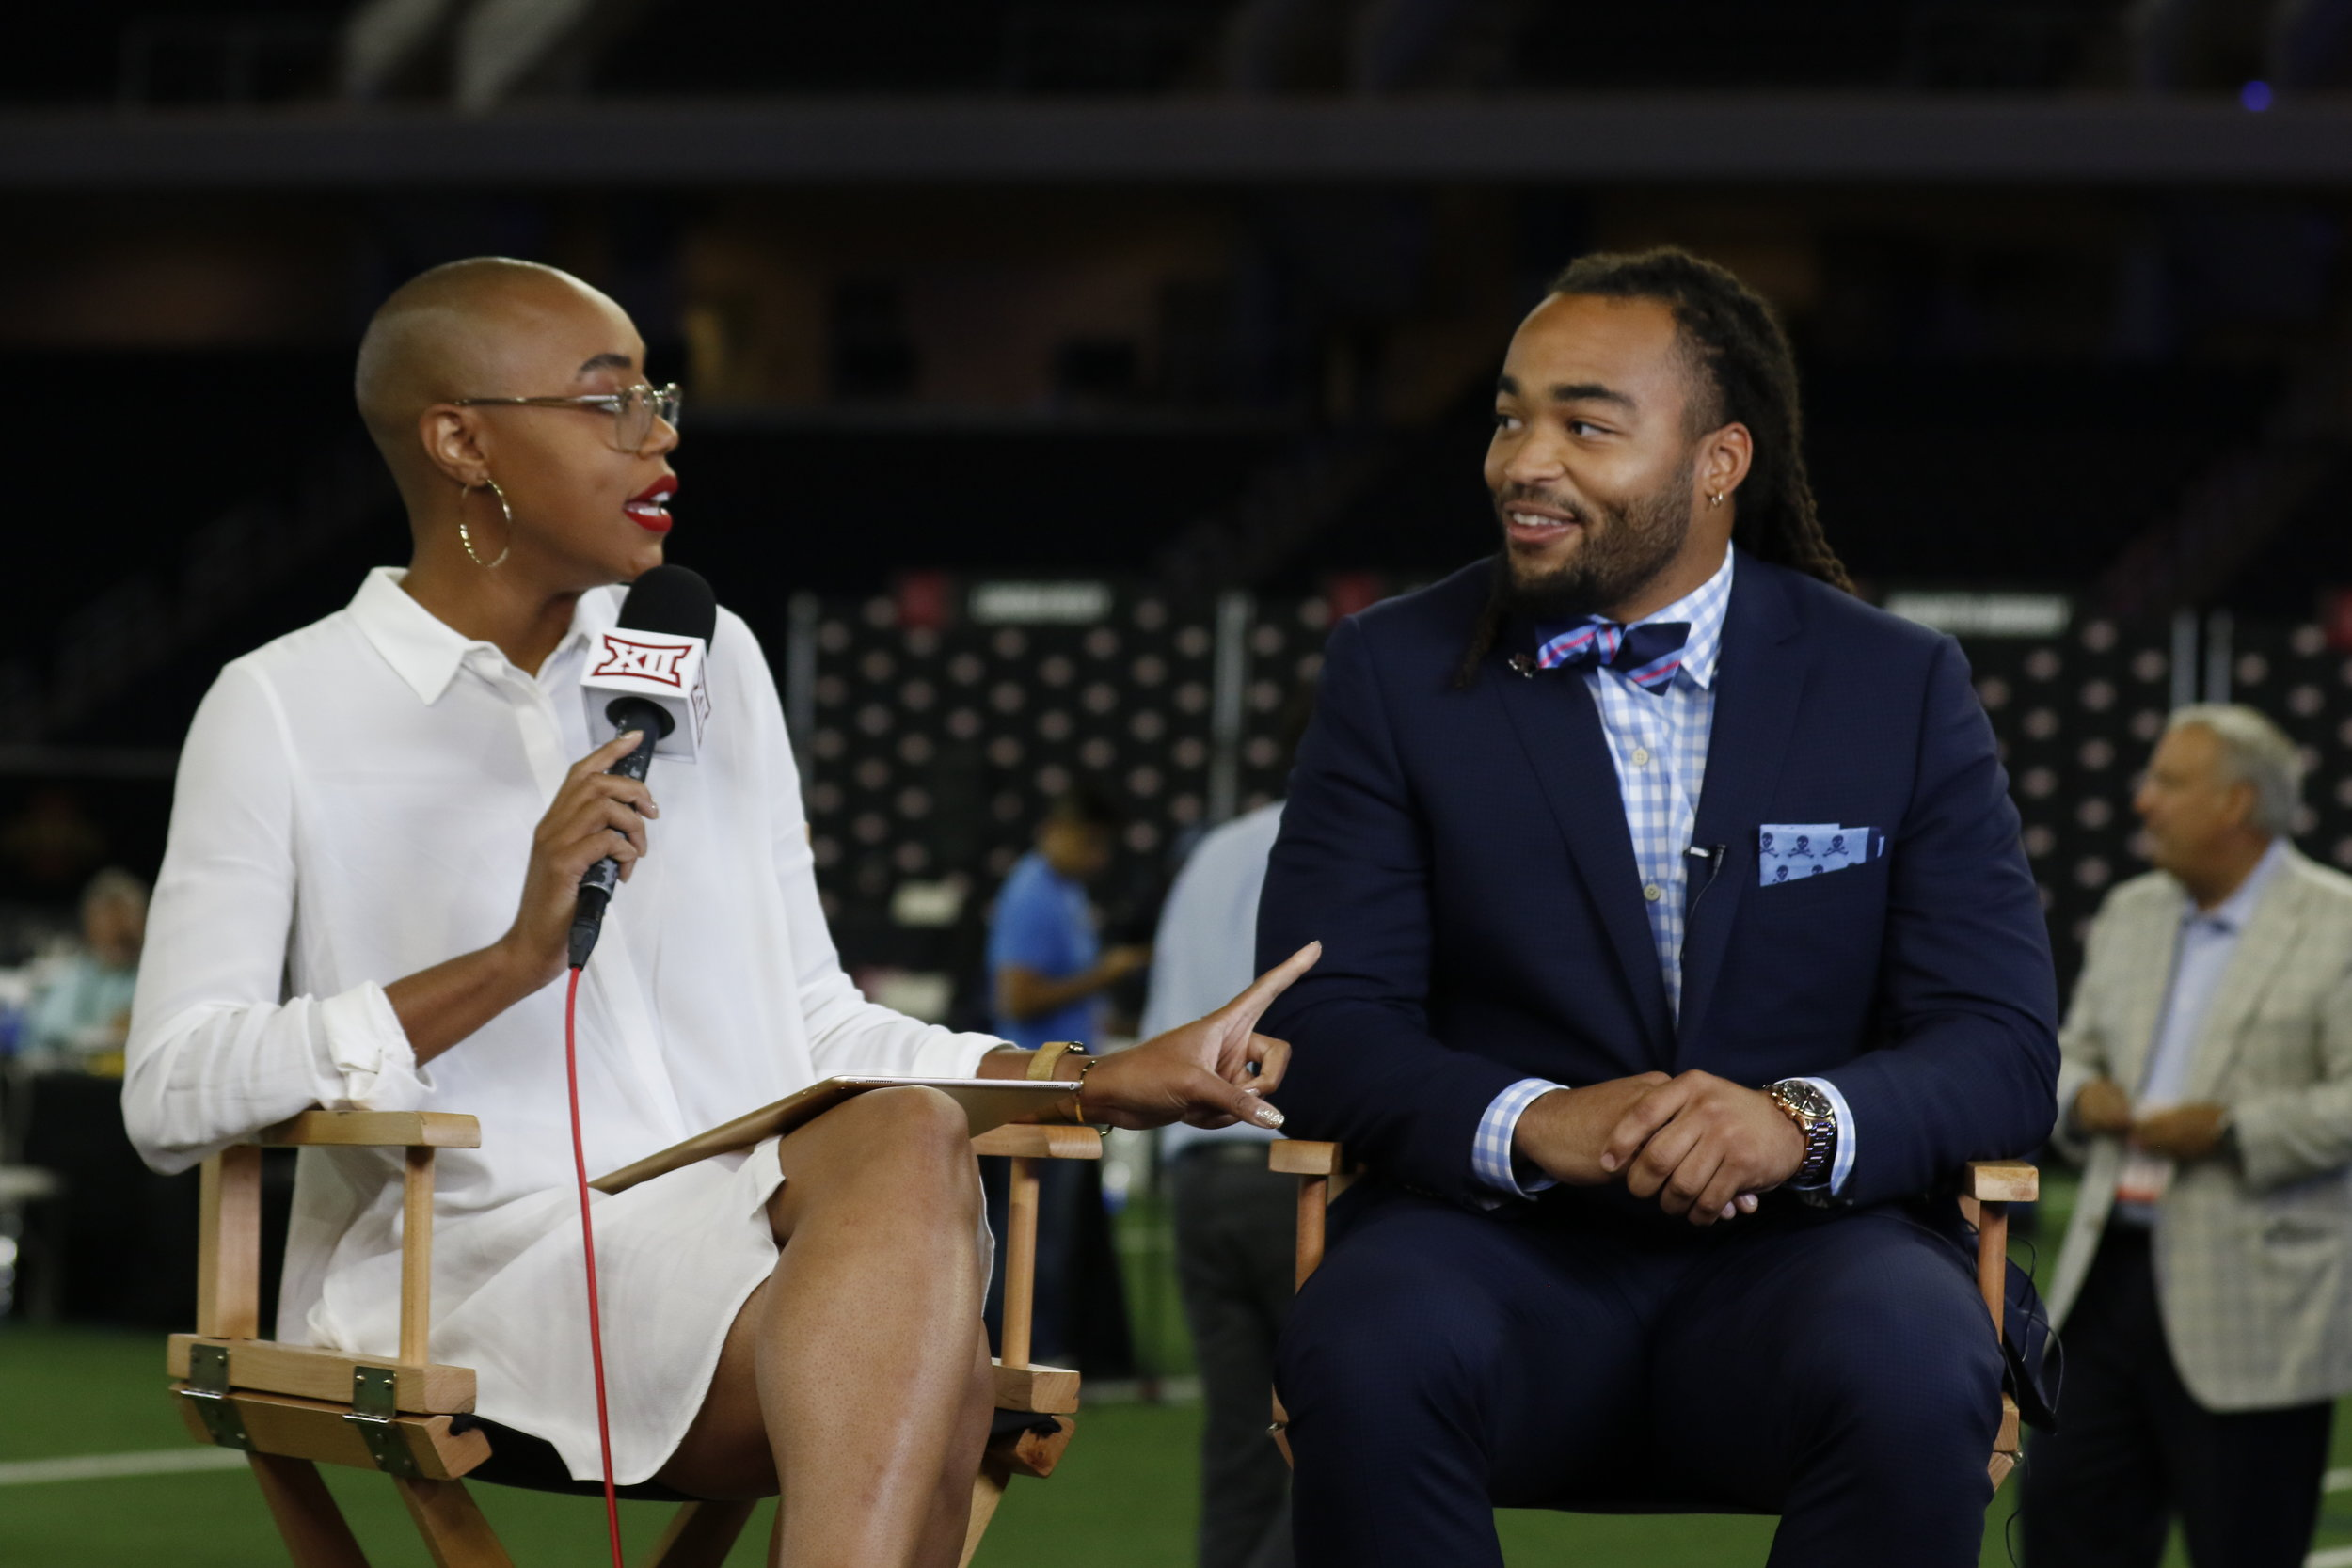 Texas Tech LB Dakota Allen and Big 12's Christine Williamson  _LPI1302.jpg